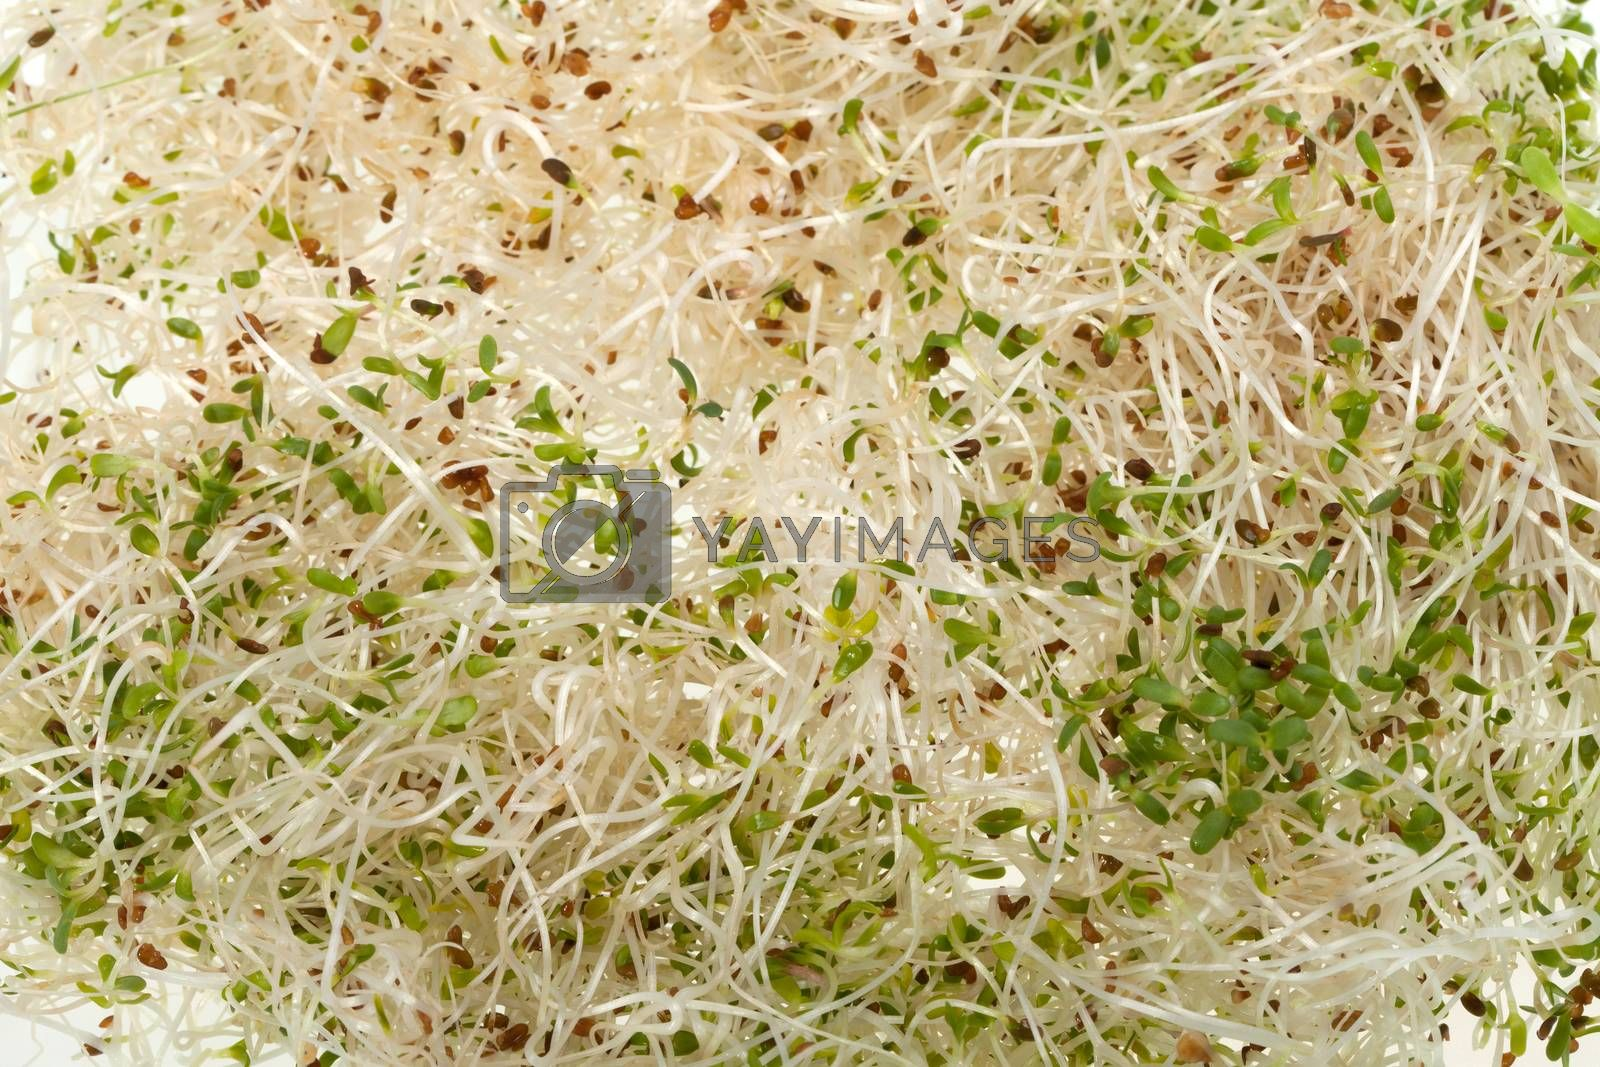 The healthy diet. Fresh sprouts isolated on white background